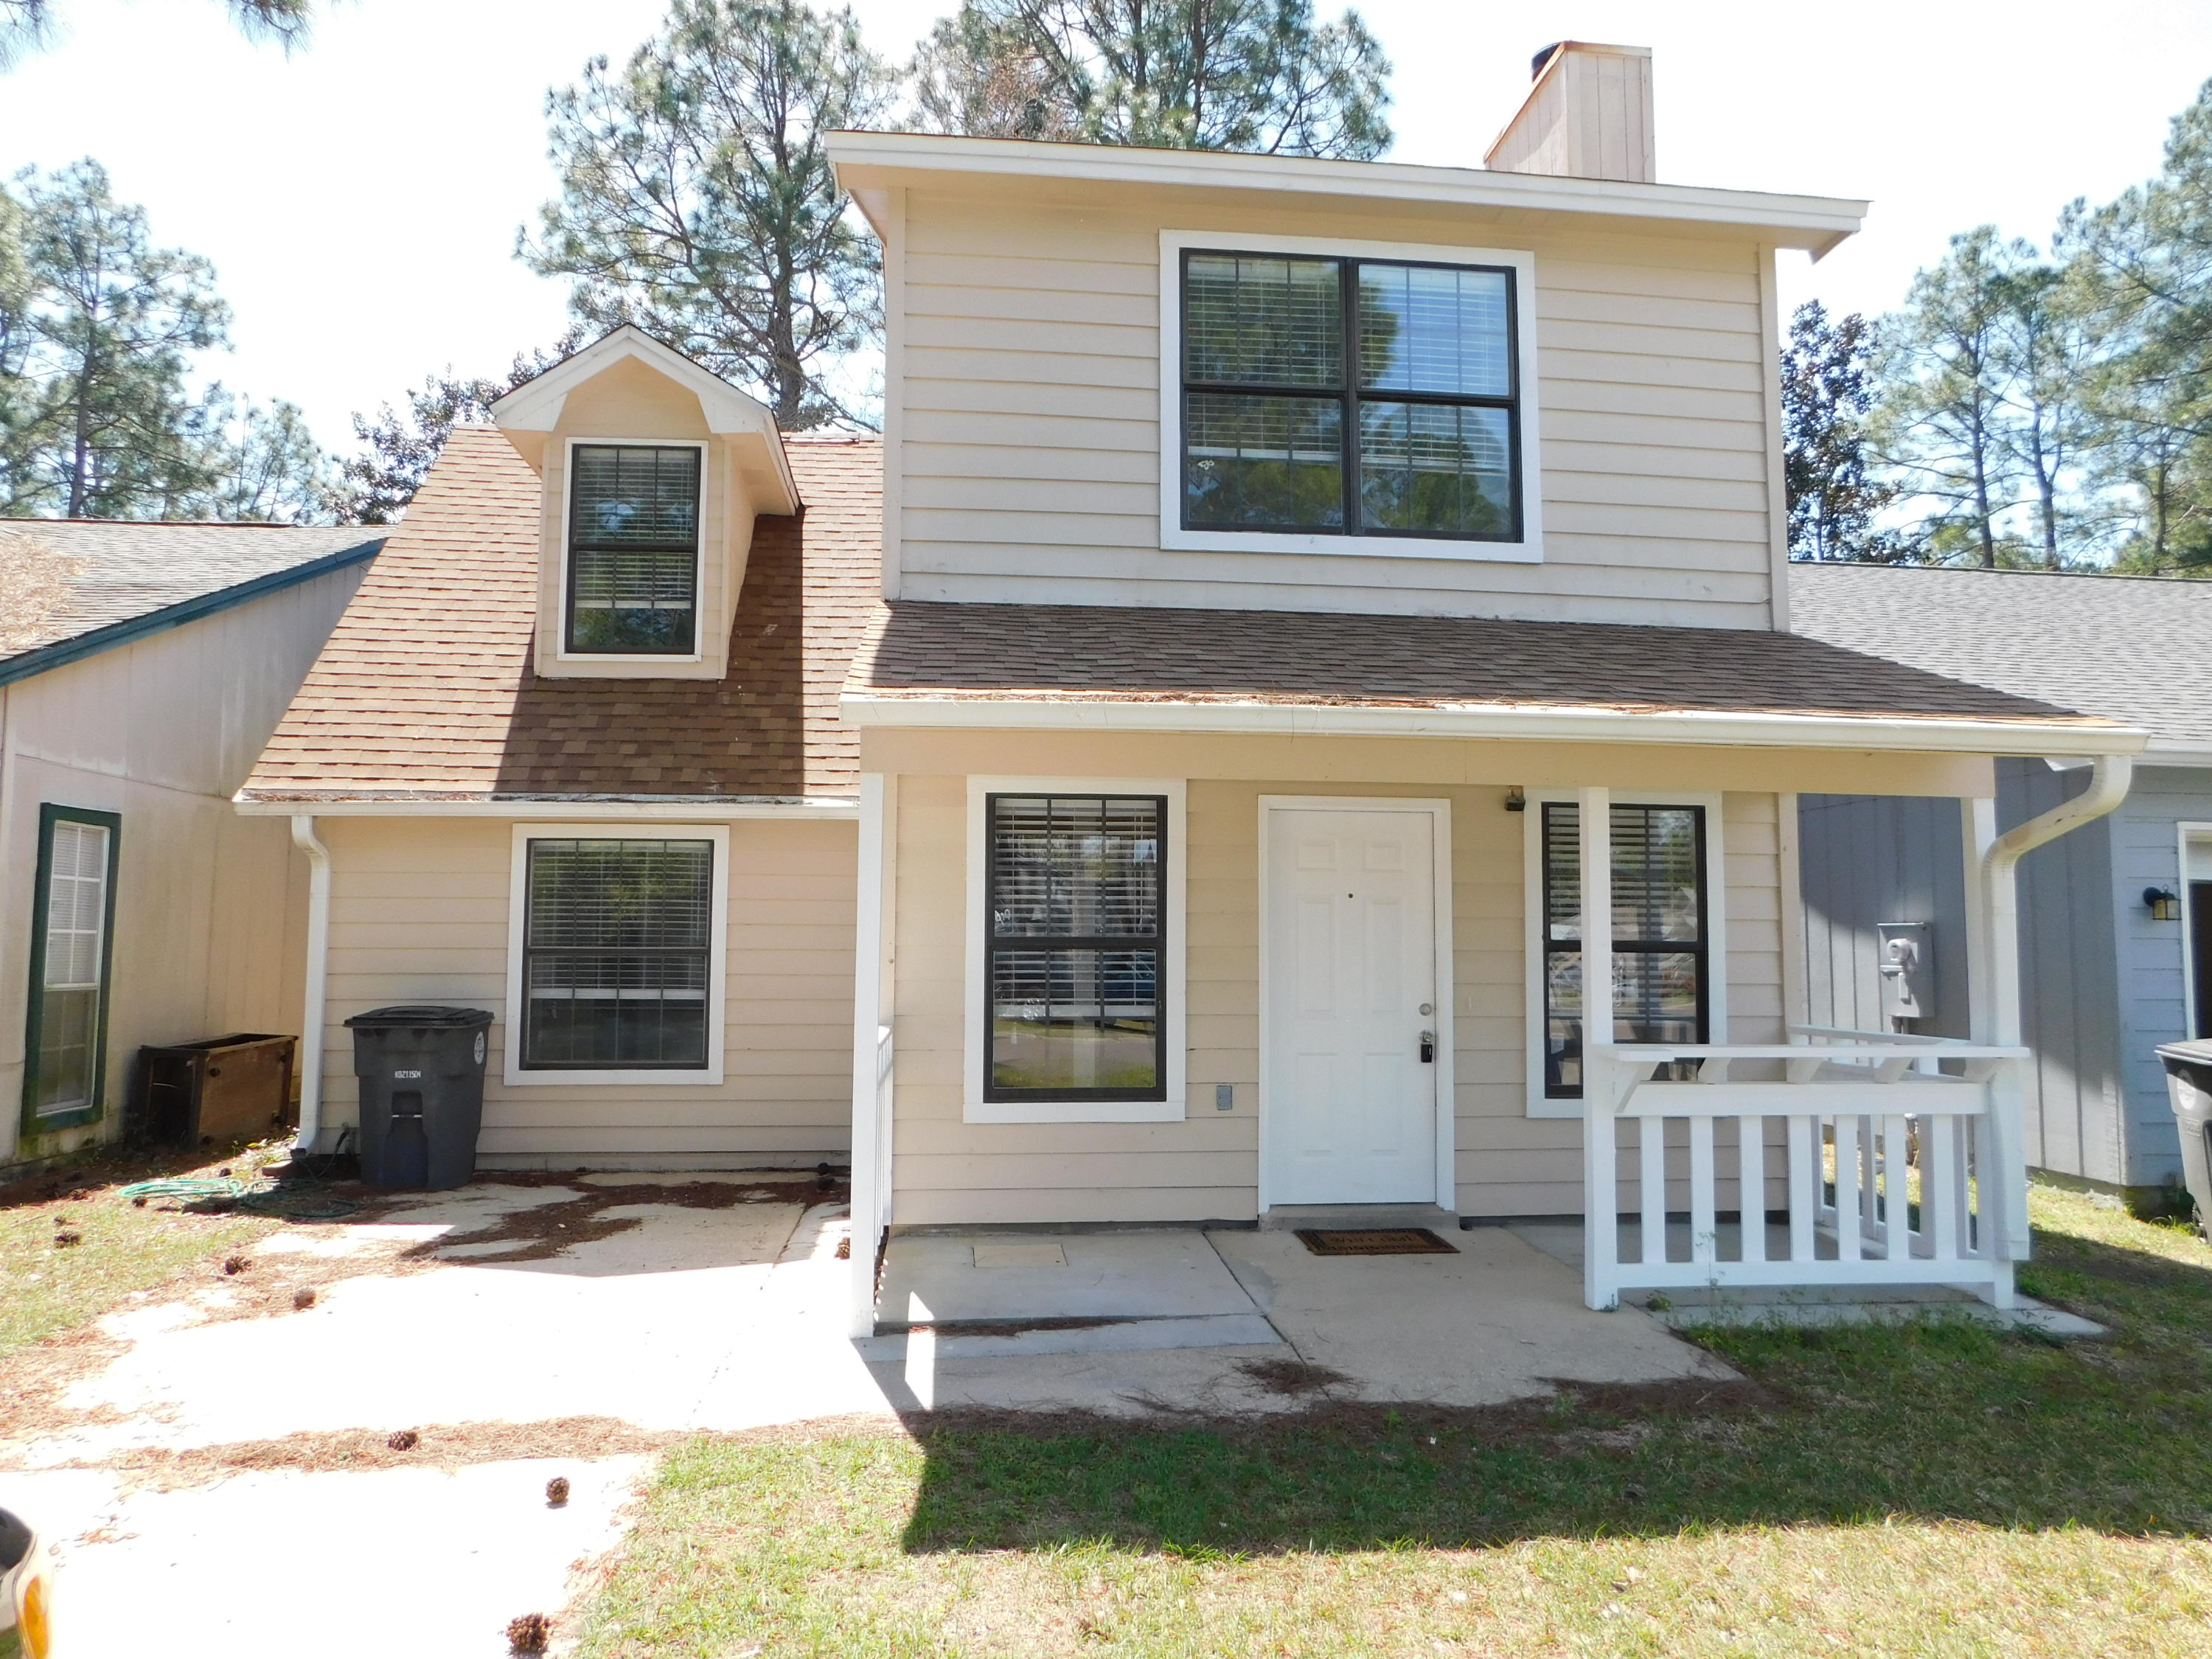 23  Kelly Way, Valparaiso in Okaloosa County, FL 32580 Home for Sale